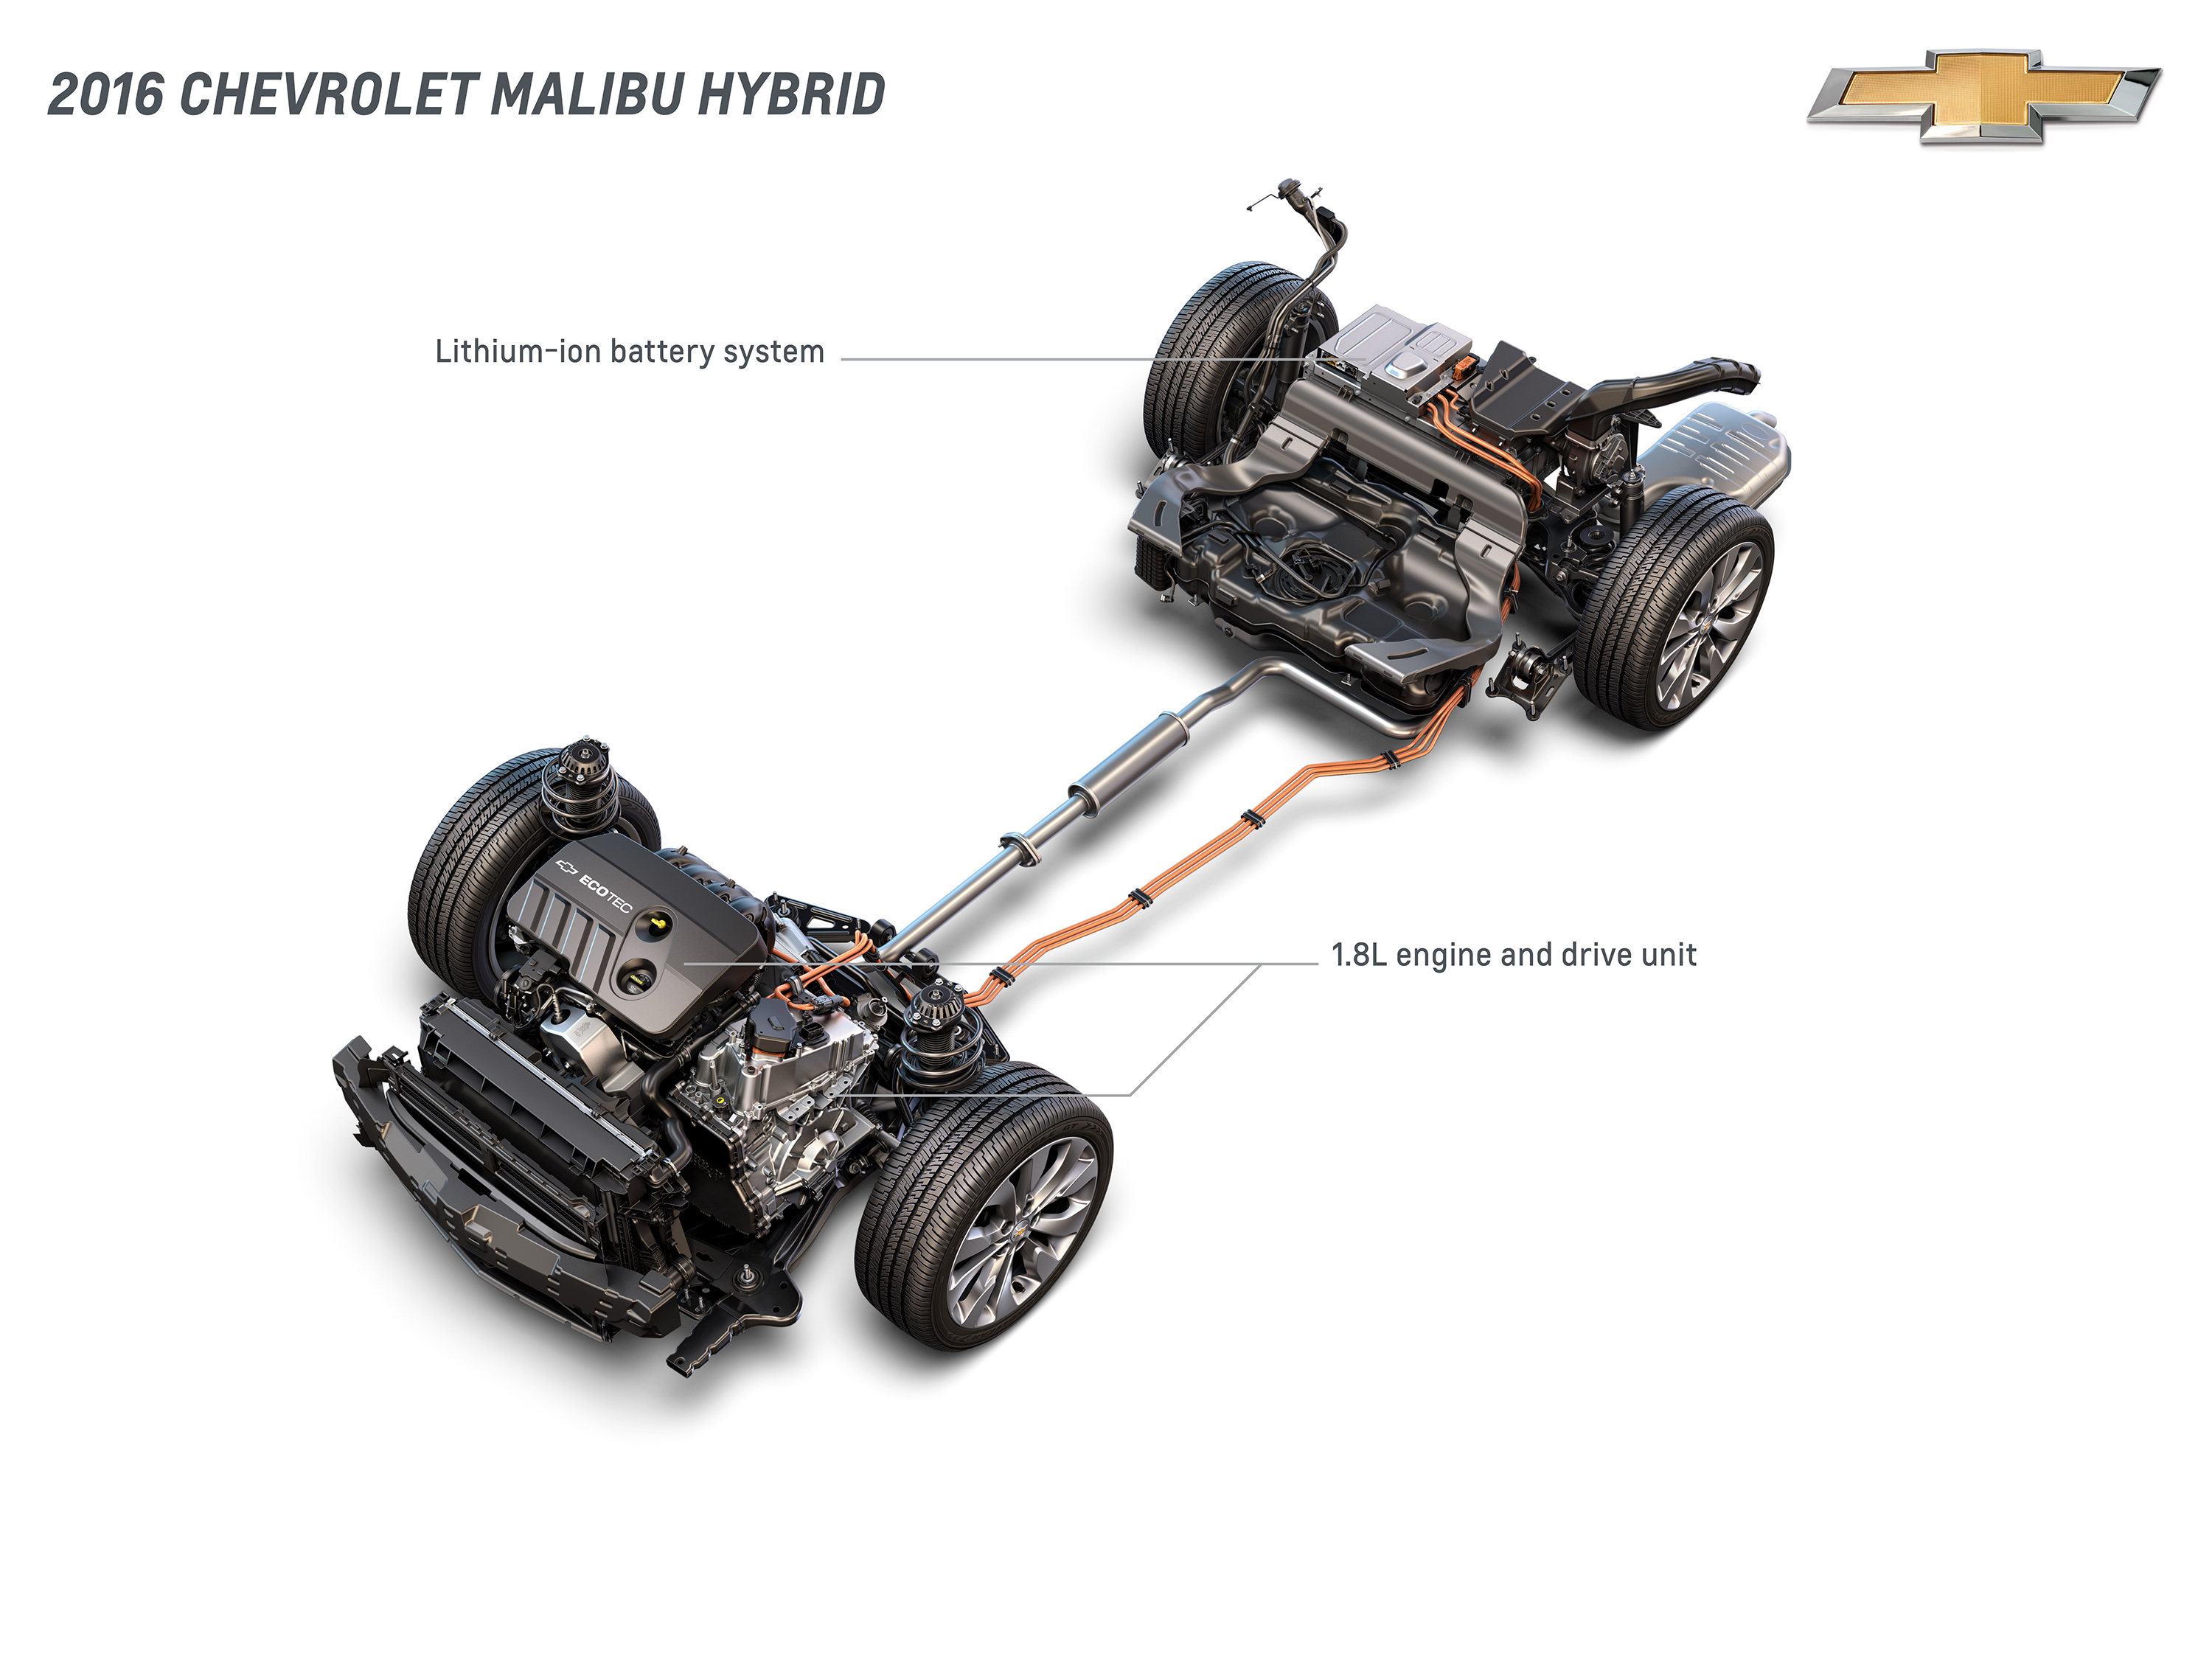 2009 Malibu Engine Diagram Wiring Library Ecotec Harness Standalone 2010 Chevy 2 4 Labeled Schematic Diagrams 2000 Parts